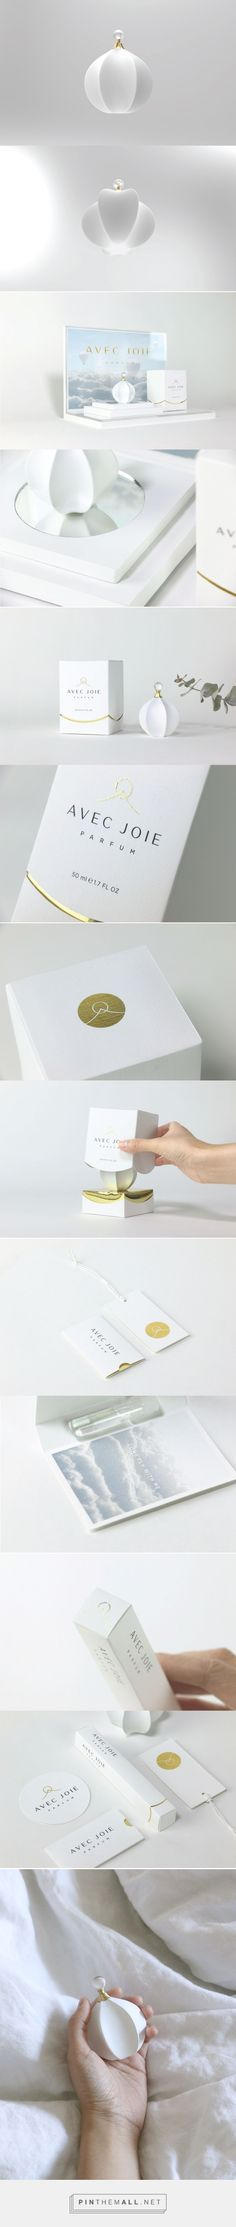 AVEC JOIE Fragrance packaging design concept by Yu-Jia Huang - http://www.packagingoftheworld.com/2017/03/avec-joie-fragrance-student-project.html